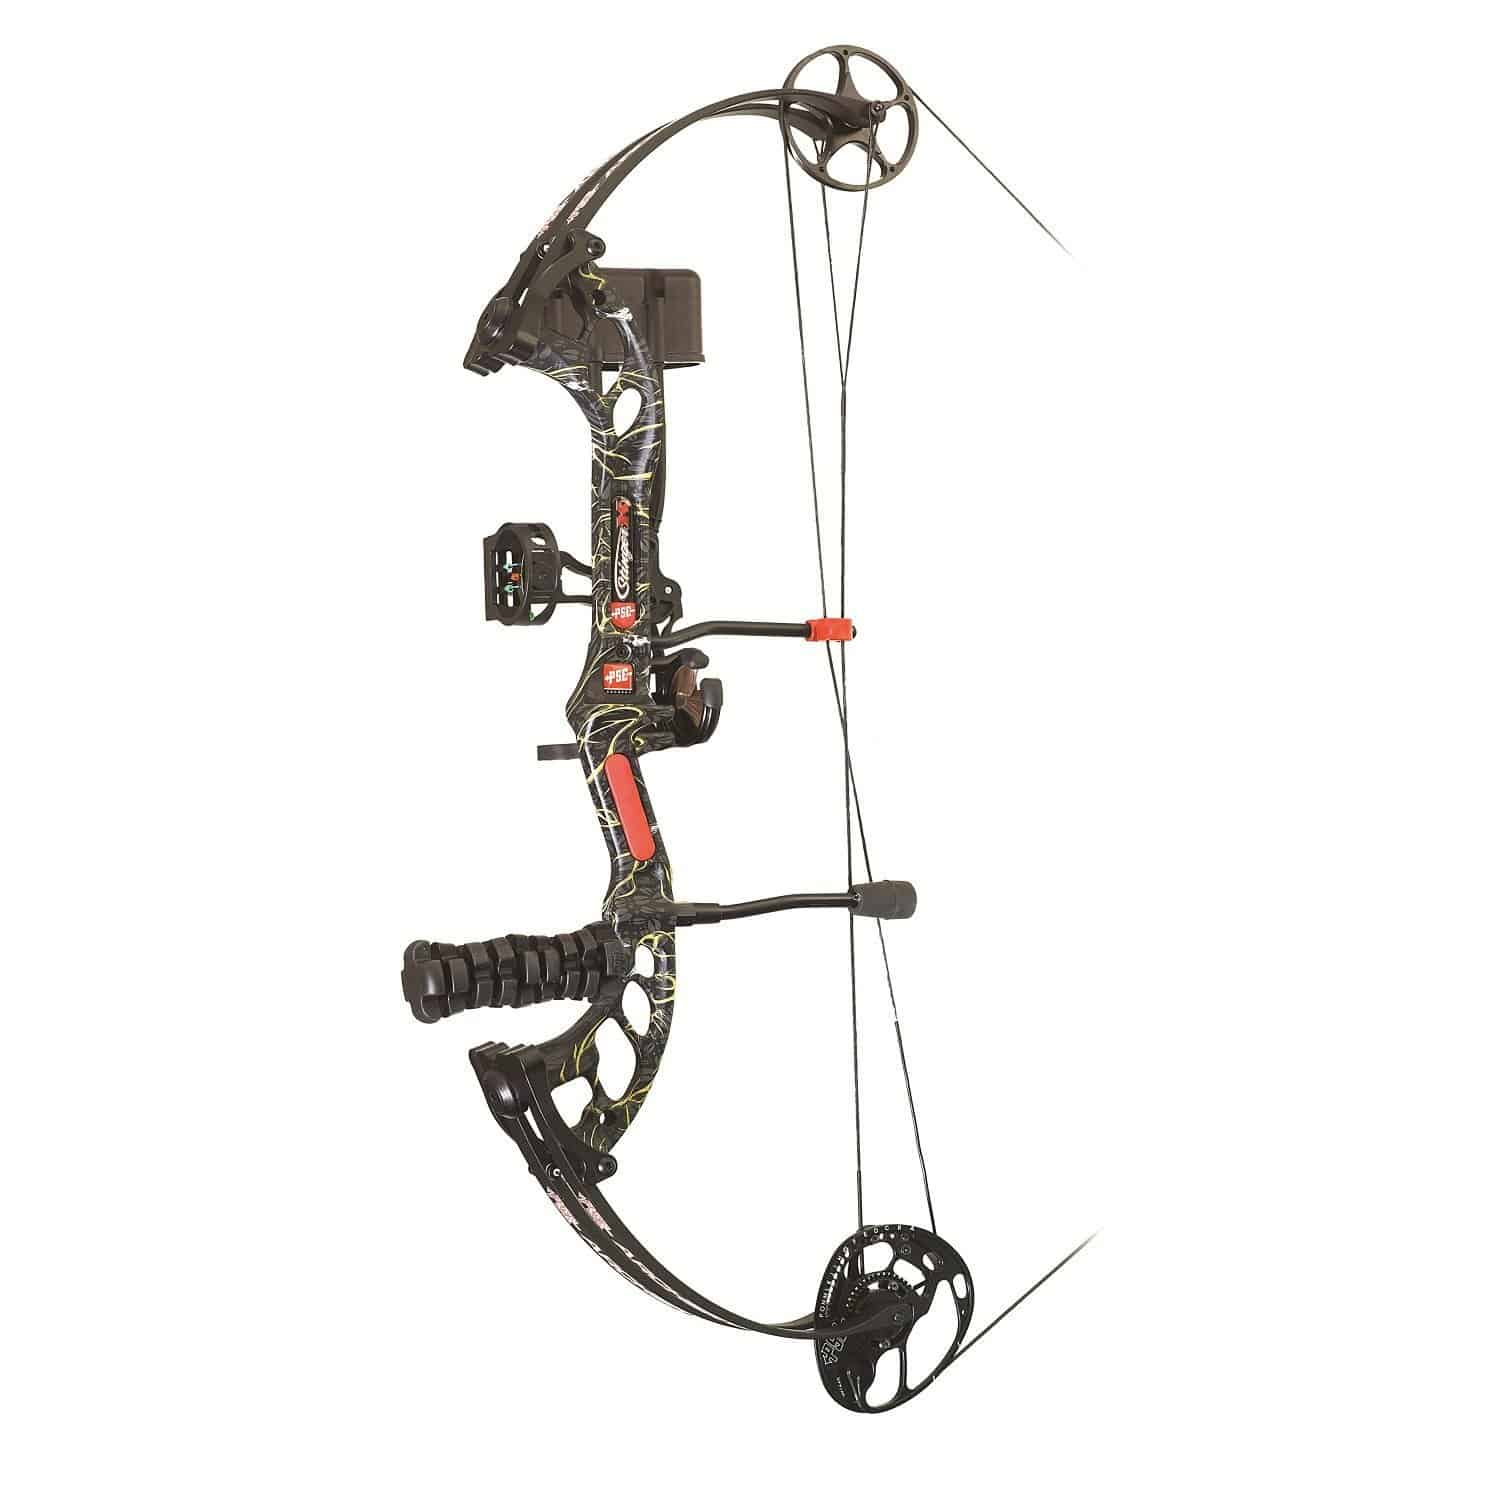 11+ BEST Compound Bows Reviewed - DON'T WASTE YOUR MONEY ON